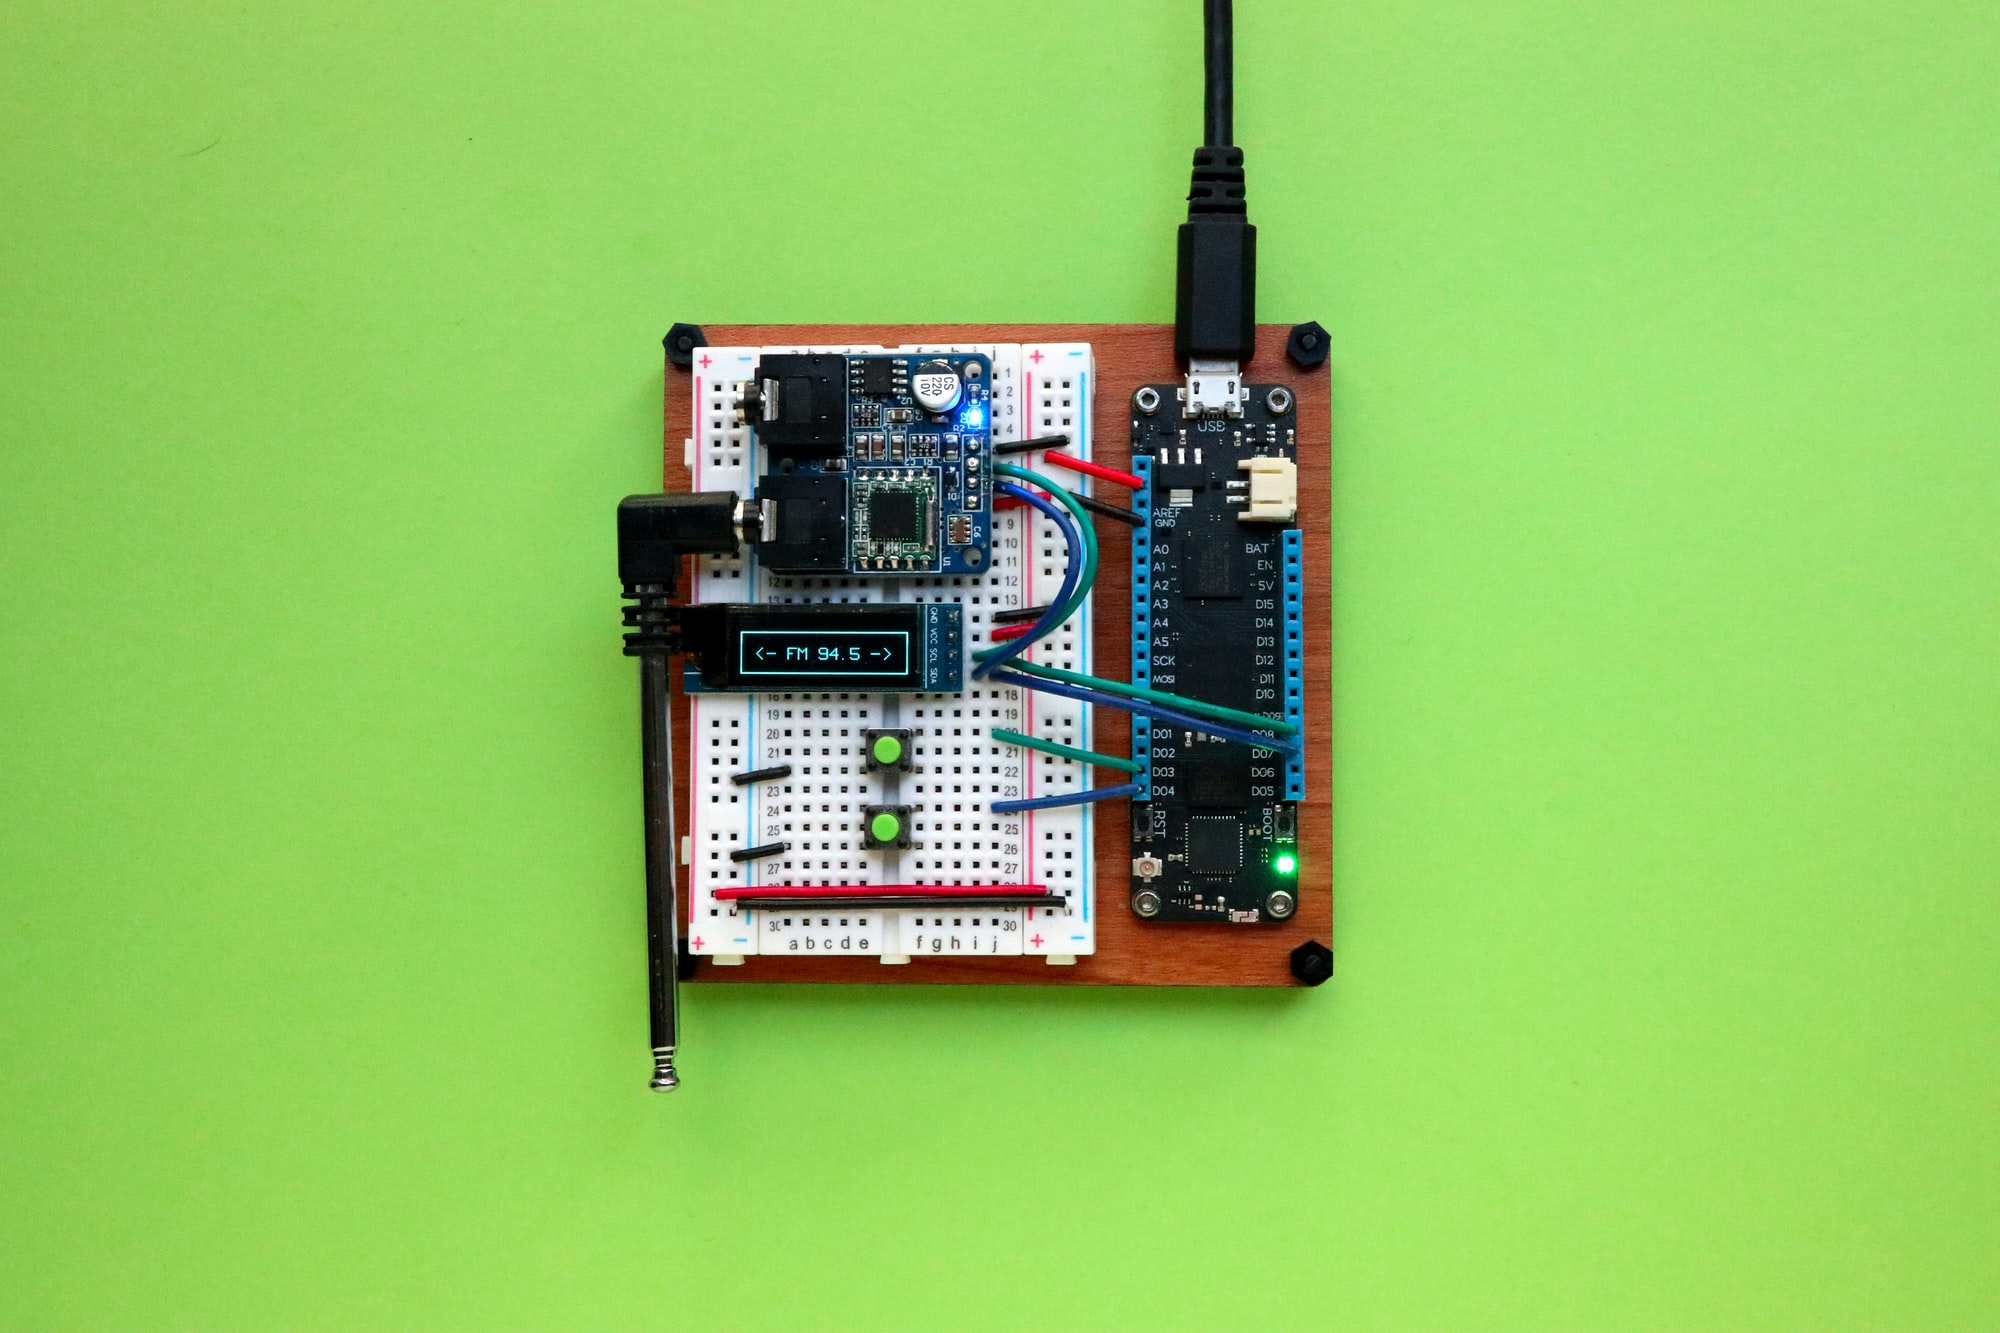 Sensor technology in the Internet of Things